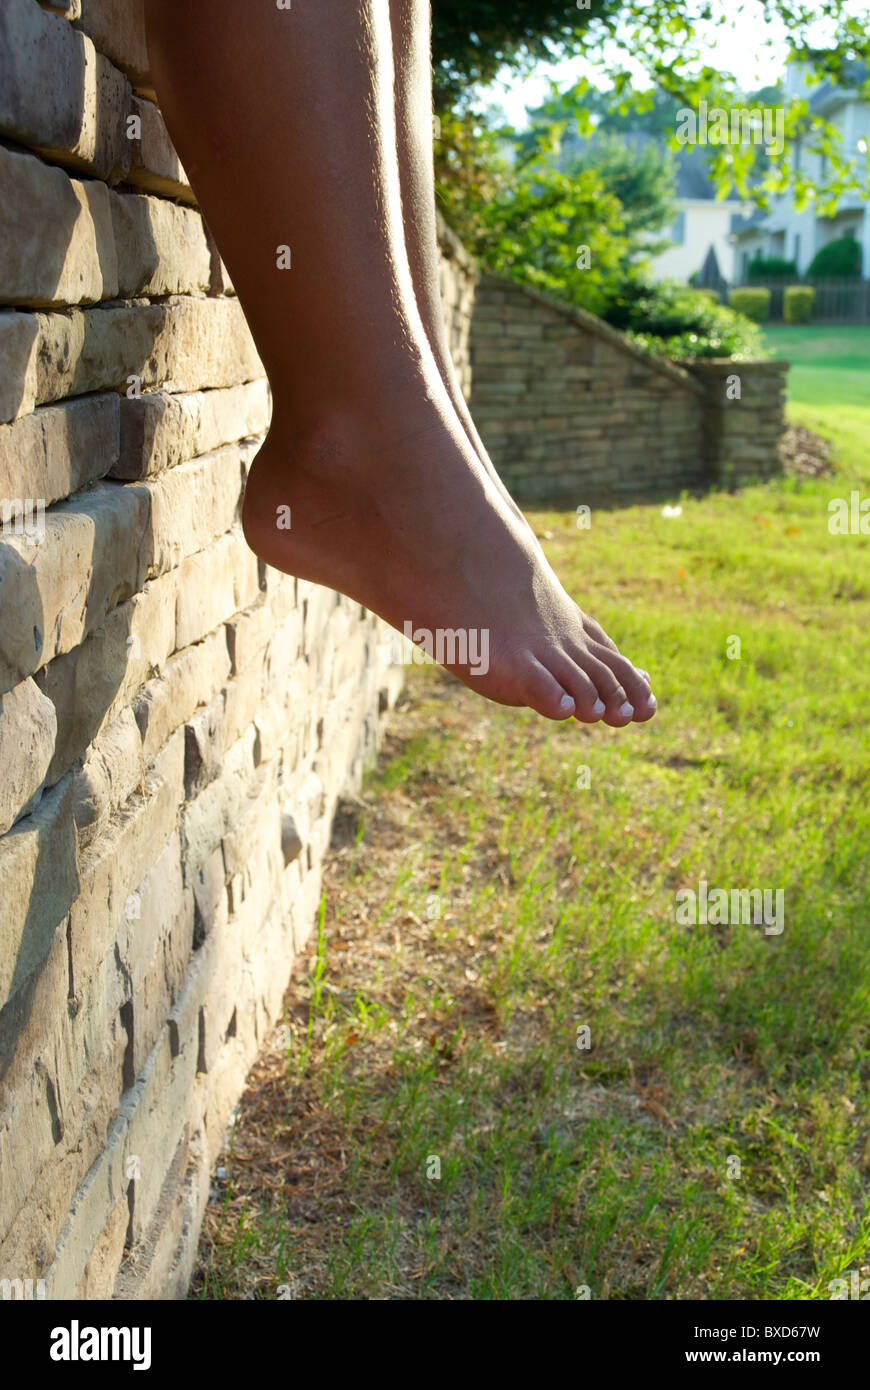 Young boy's legs hang off a stone wall. - Stock Image